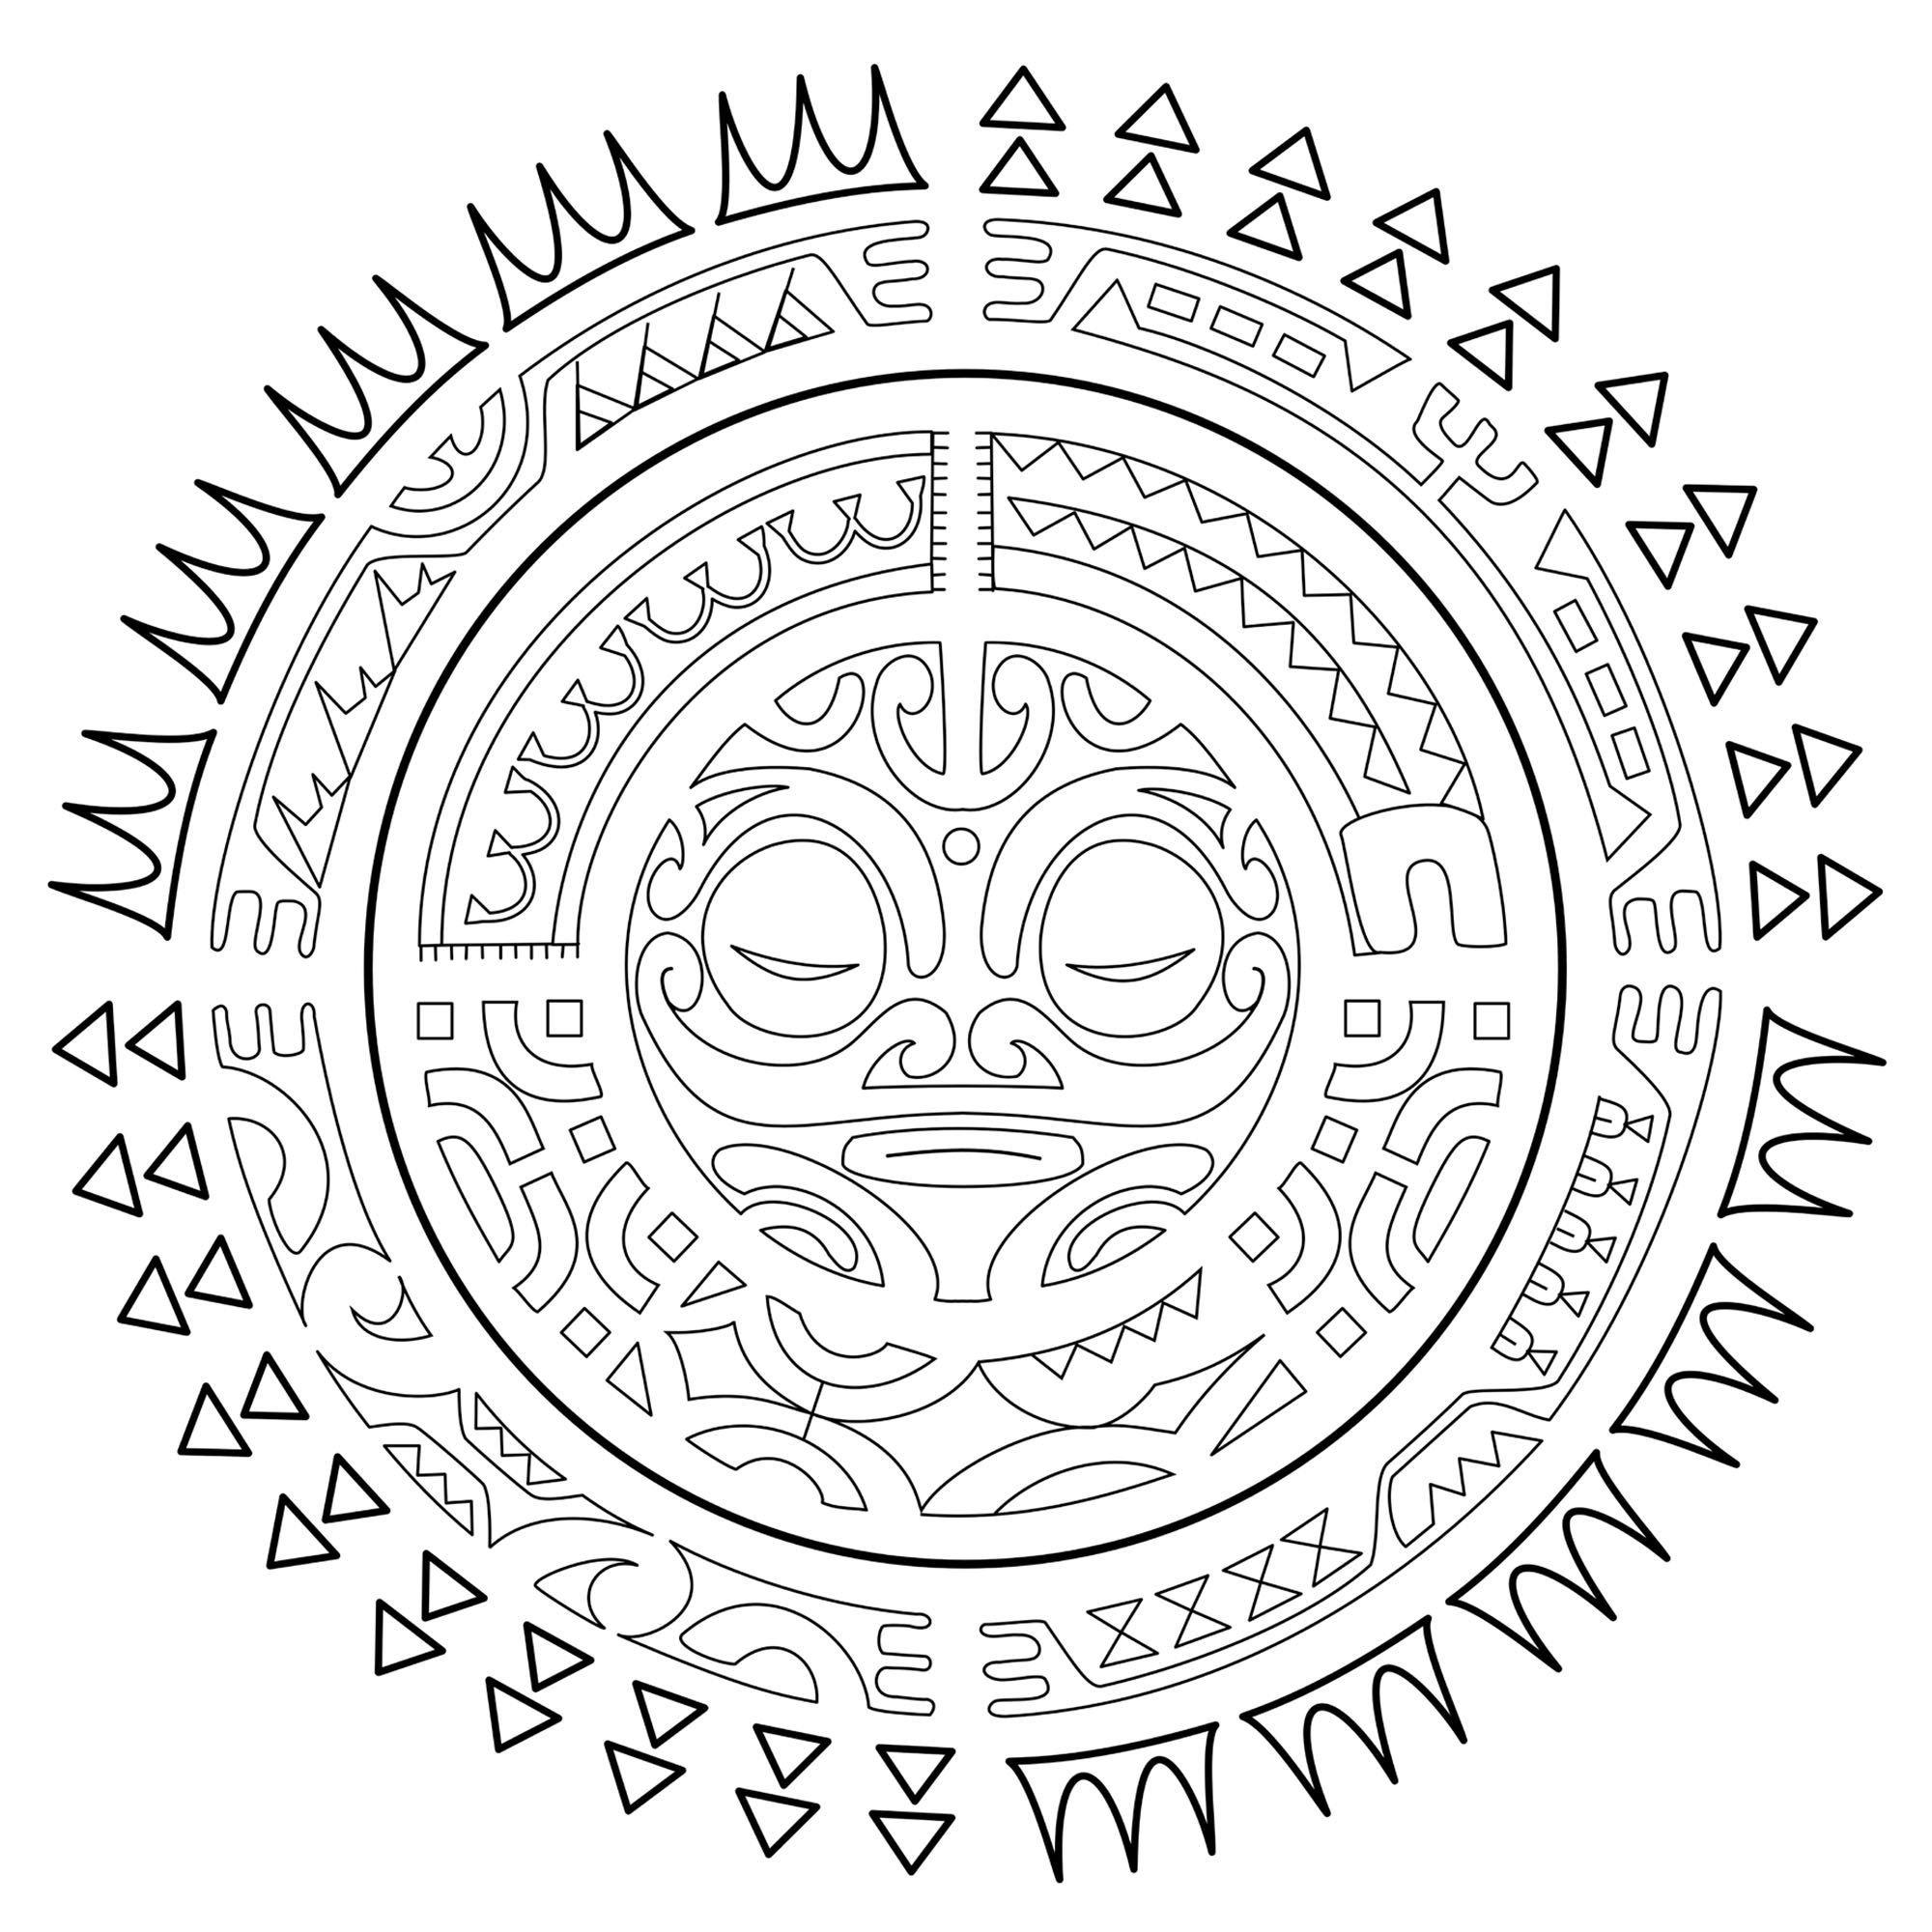 Polynesian Tattoos The Sun Tattoo Idea With Mandalas 100 Mandalas Zen Anti Stress,Drawing Easy Elements And Principles Of Design Matrix